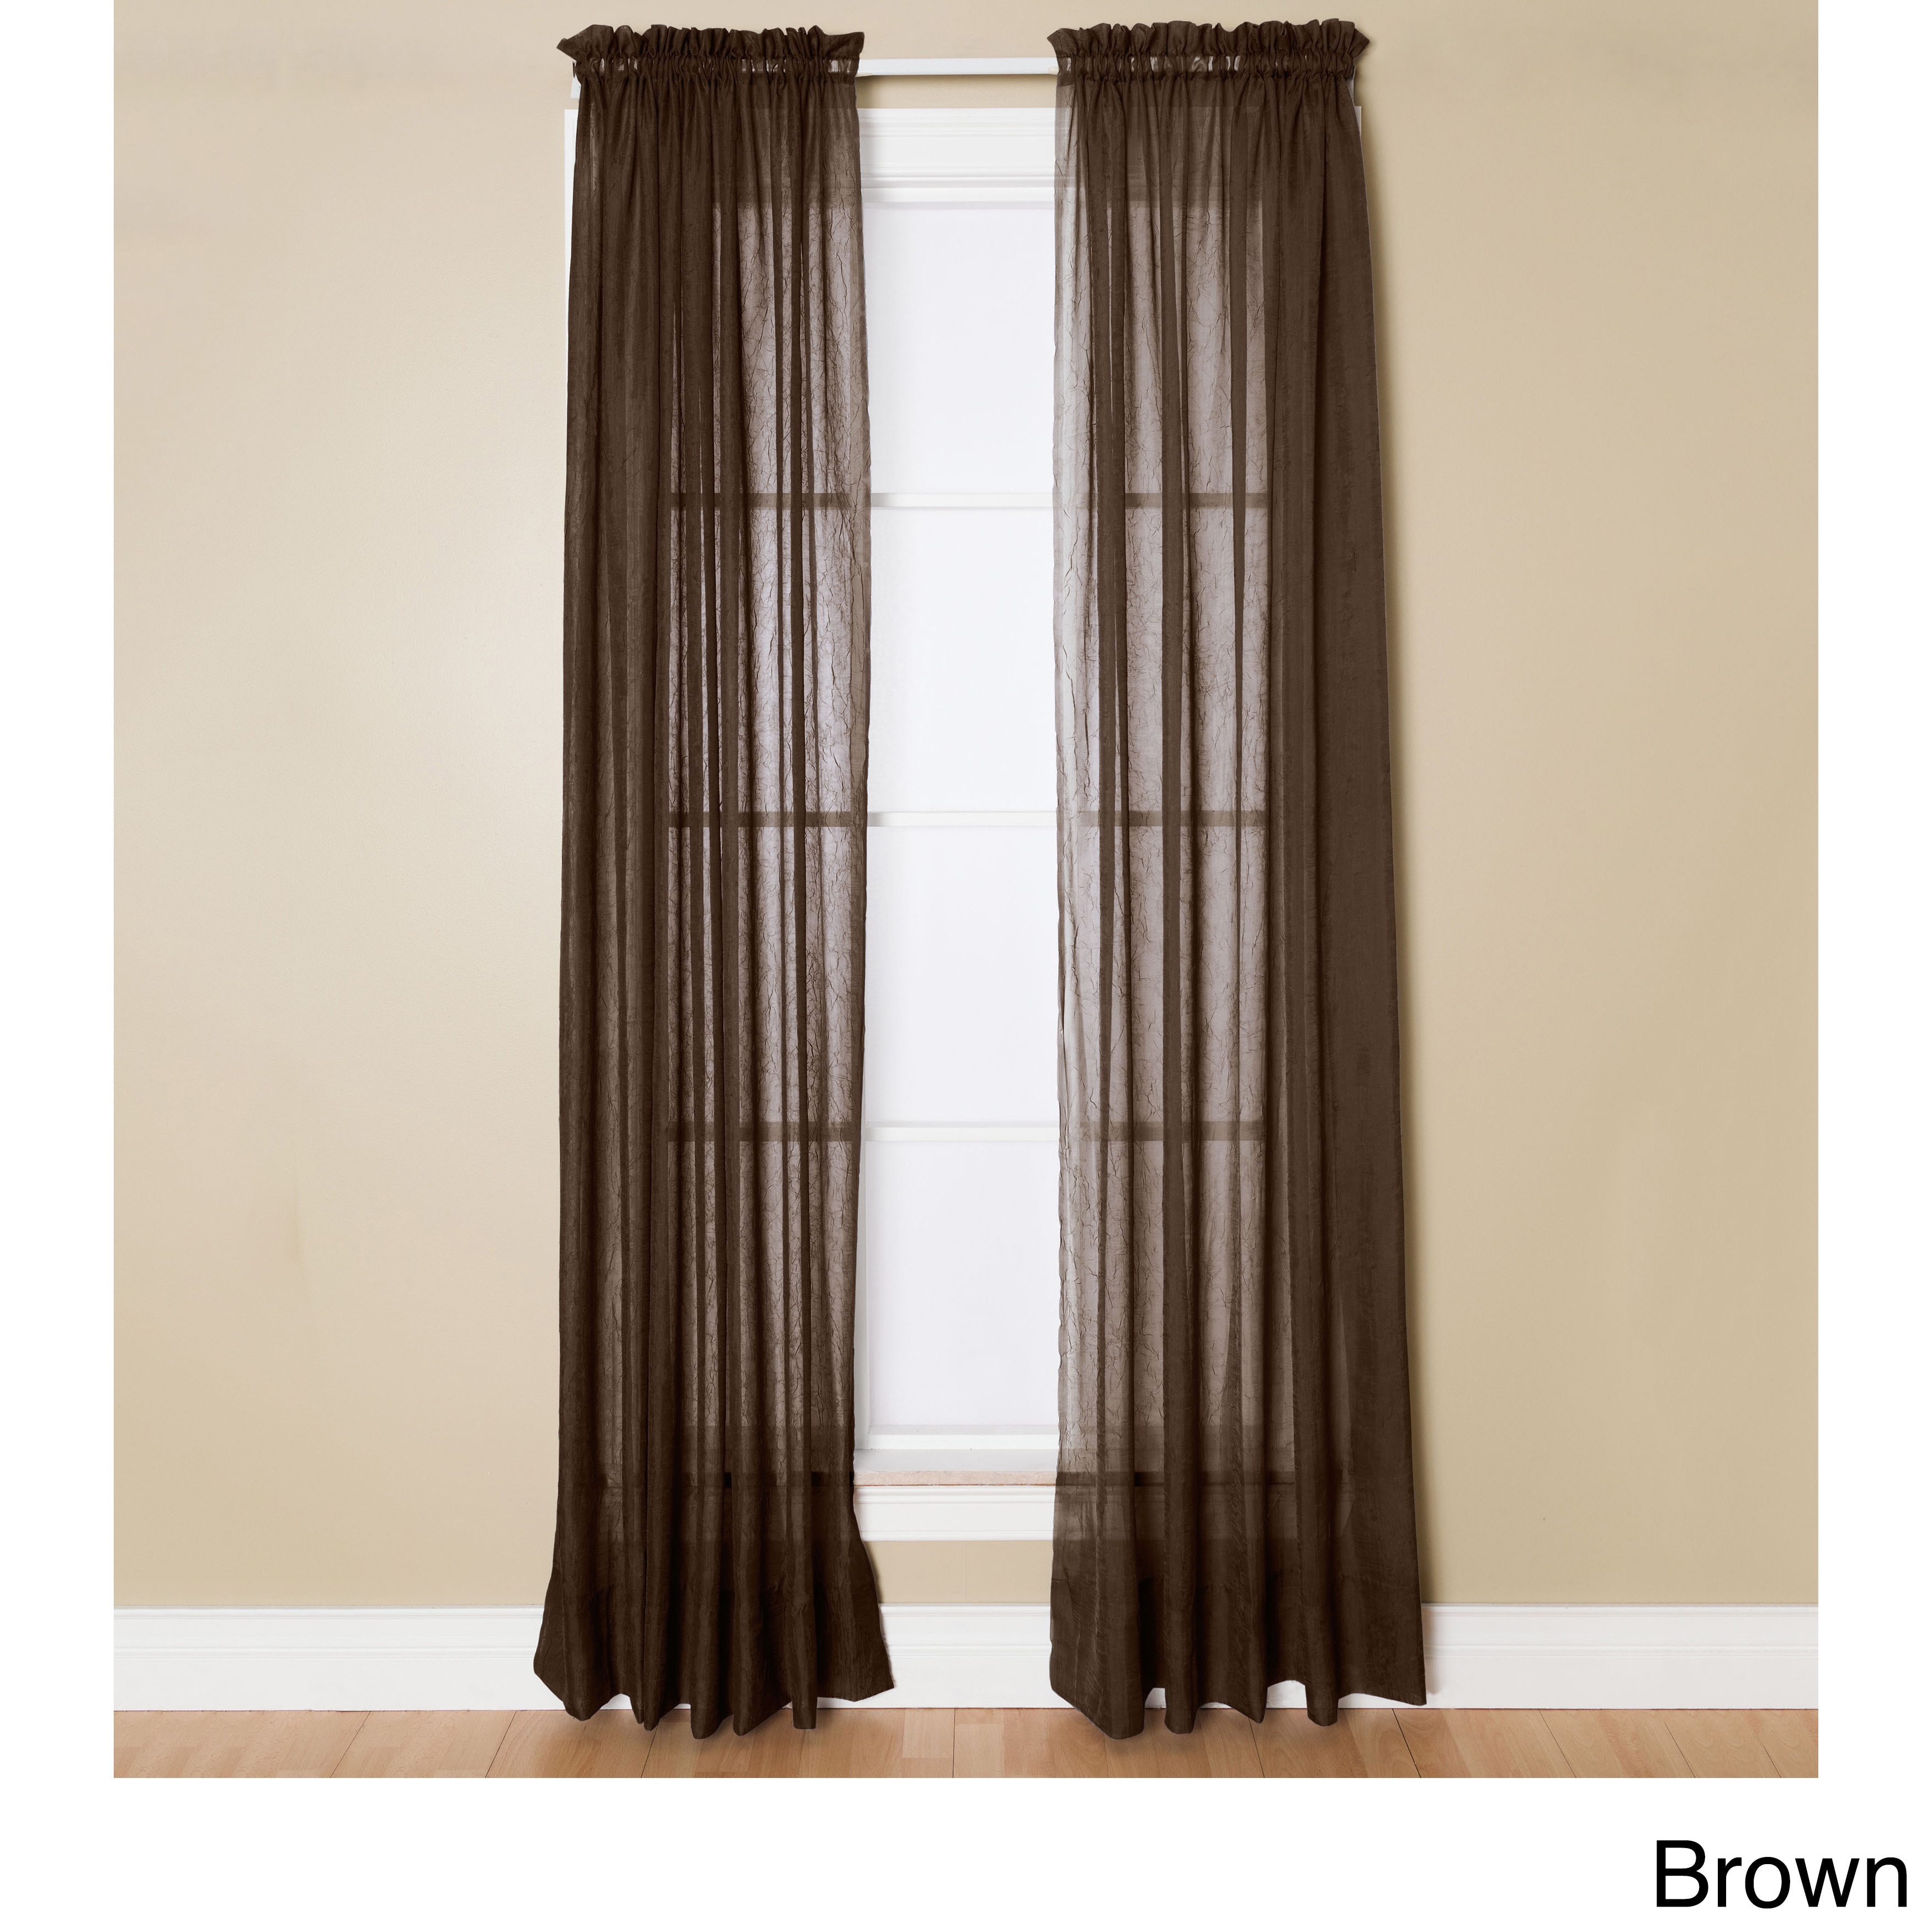 waters curtain inches beautiful avanti shower extra gallery fabric inch of curtains lovely long browning clear blue